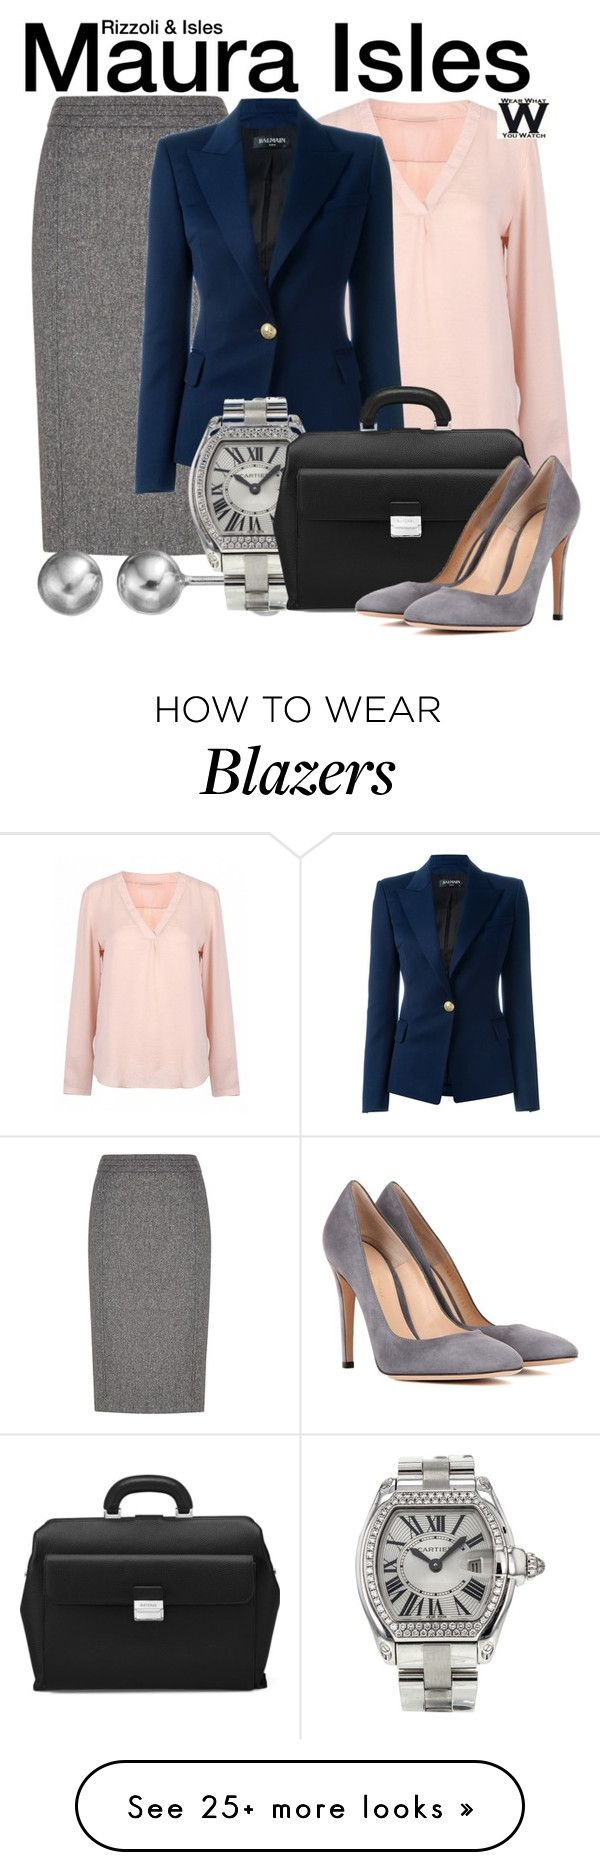 """Rizzoli & Isles"" by wearwhatyouwatch on Polyvore featuring Austin Reed, Balmain, Journee Collection, Cartier, Aspinal of London, Gianvito Rossi, television and wearwhatyouwatch"